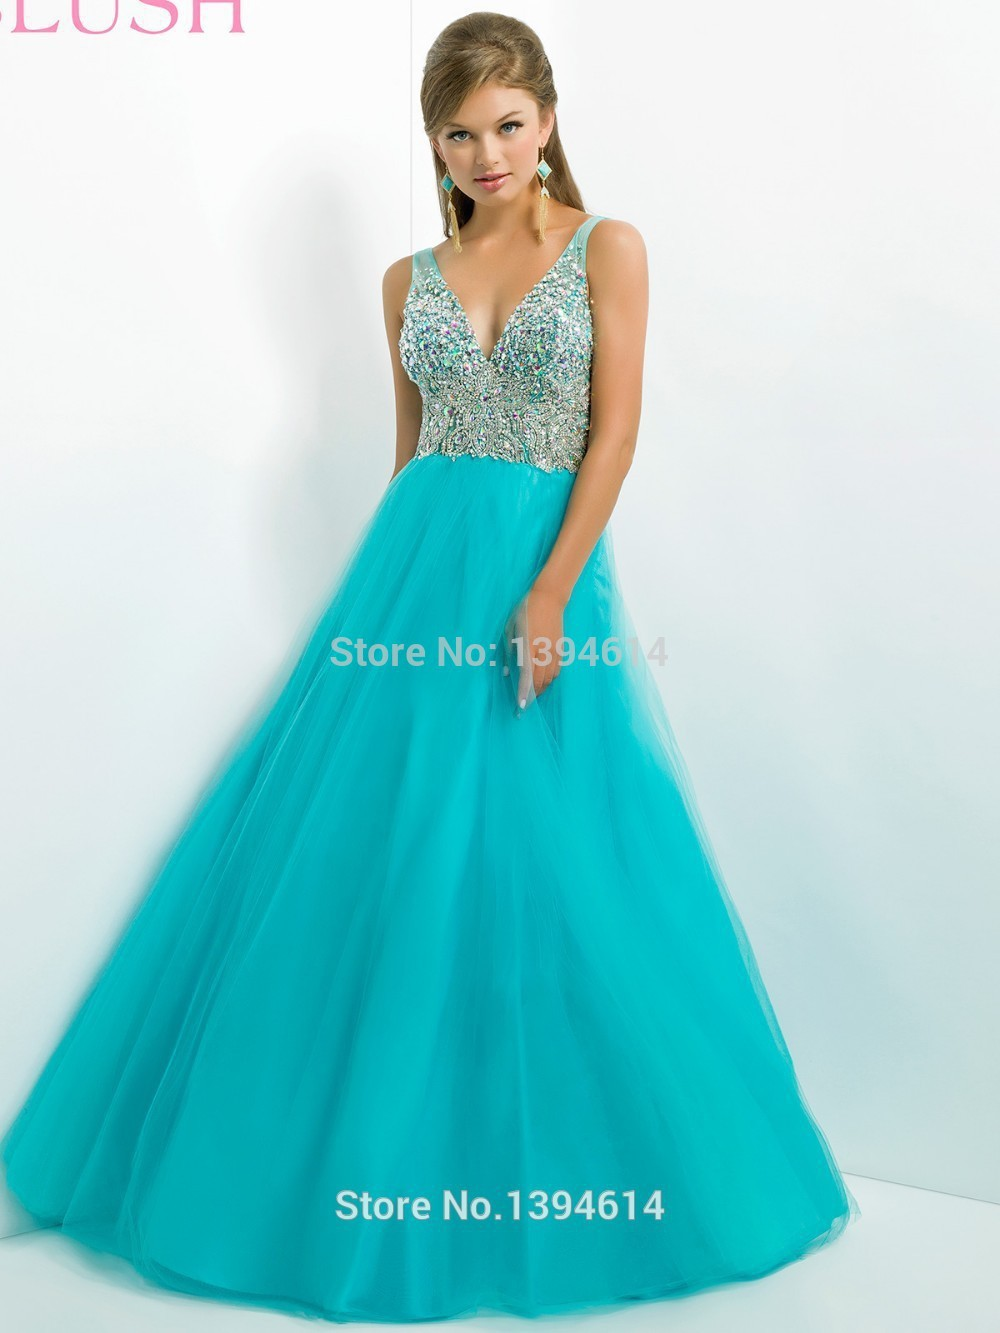 Prom Dresses For Kids Used Dress Red Boutique Make Your Own Ball ...